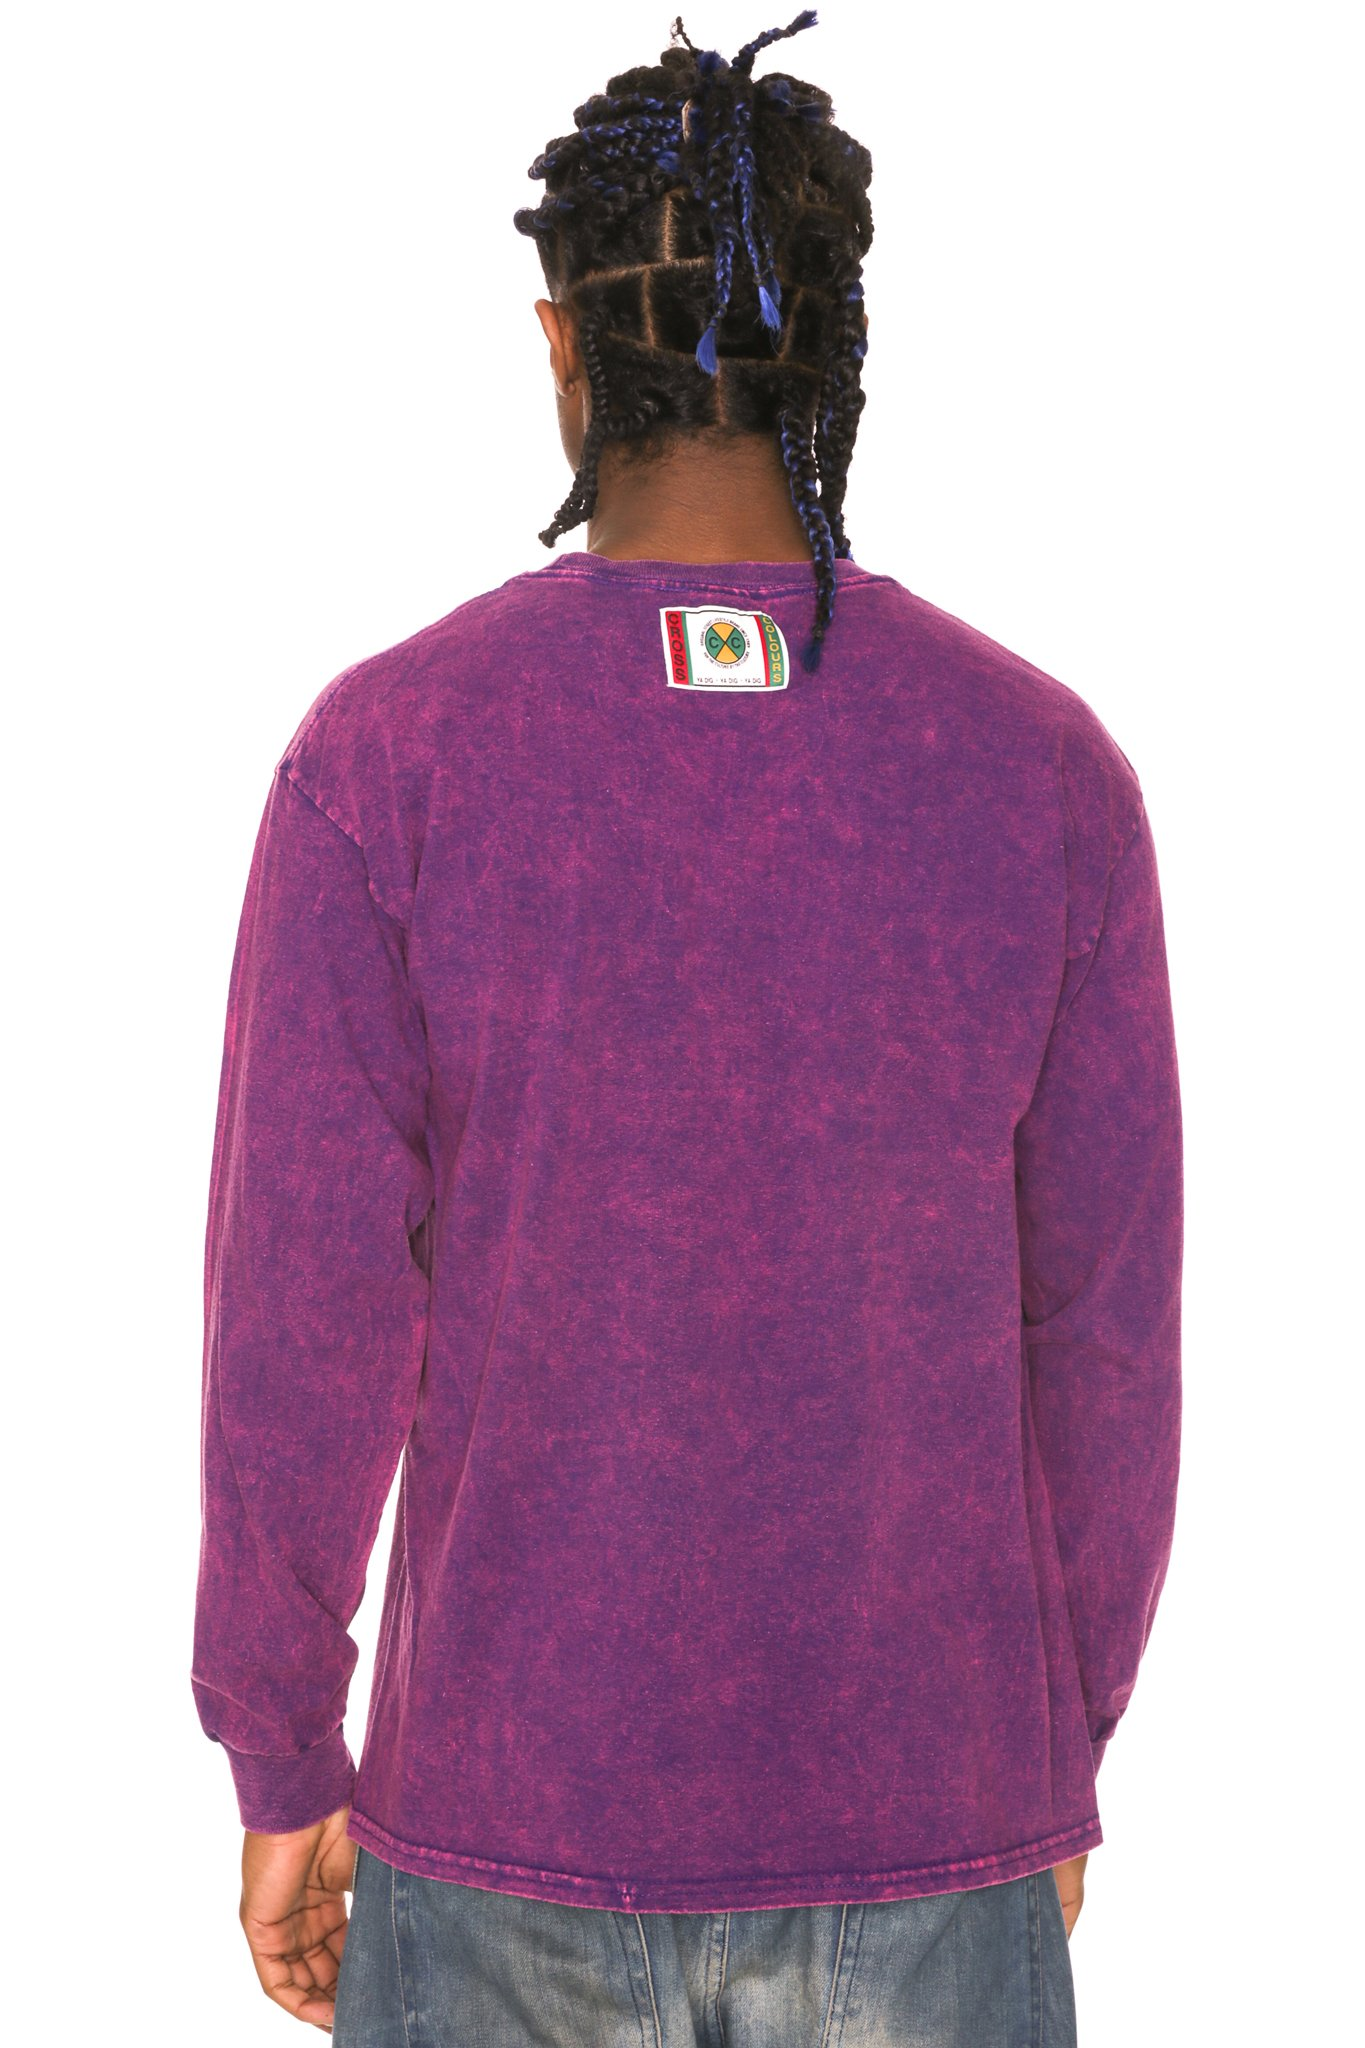 Cross_Colours_Left_Eye_Glasses_Long_Sleeve_TShirt__Purple